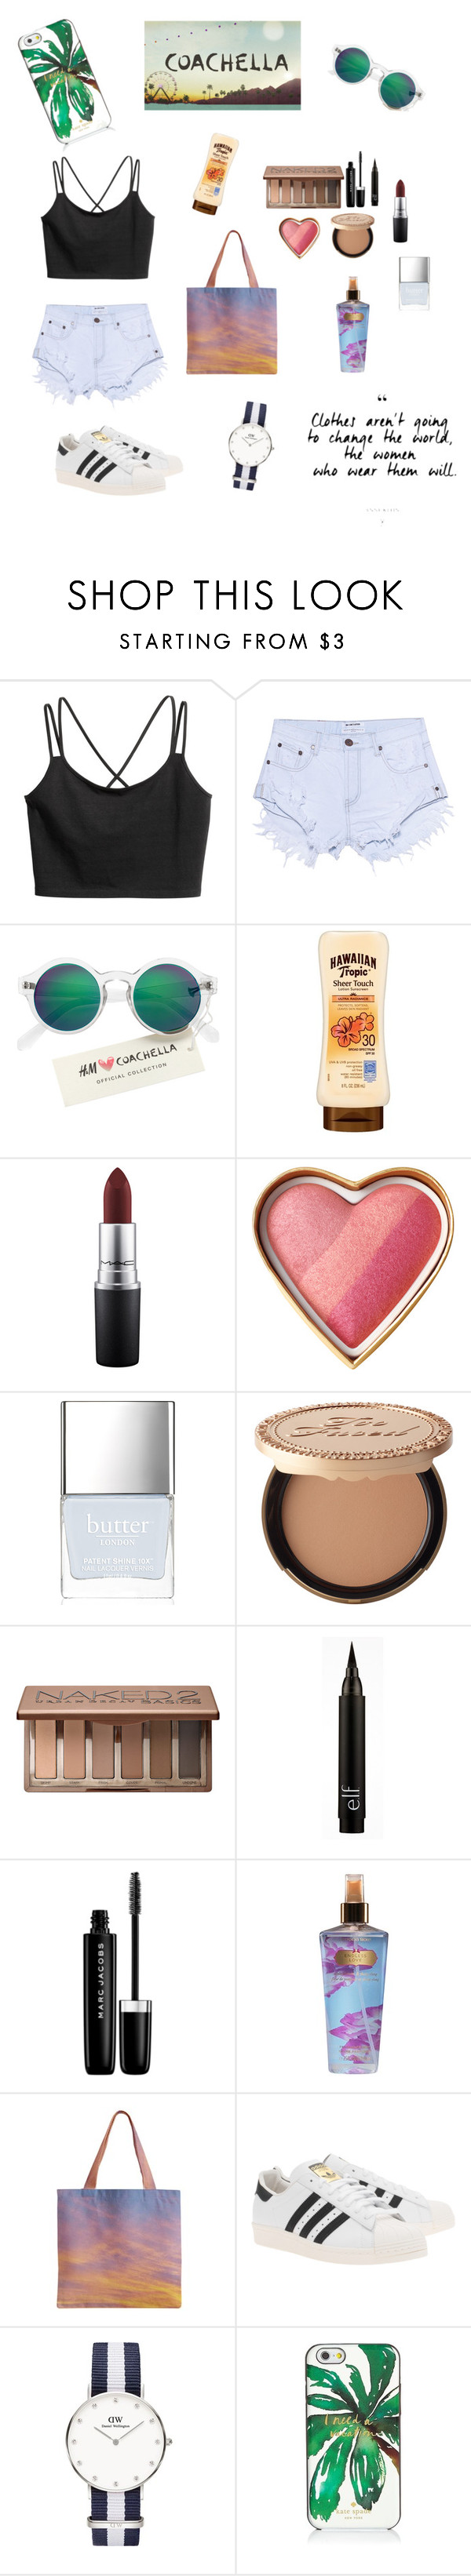 """""""Coachella """" by nana19574 ❤ liked on Polyvore featuring One Teaspoon, H&M, MAC Cosmetics, Butter London, Too Faced Cosmetics, Urban Decay, Marc Jacobs, Victoria's Secret, adidas Originals and Daniel Wellington"""